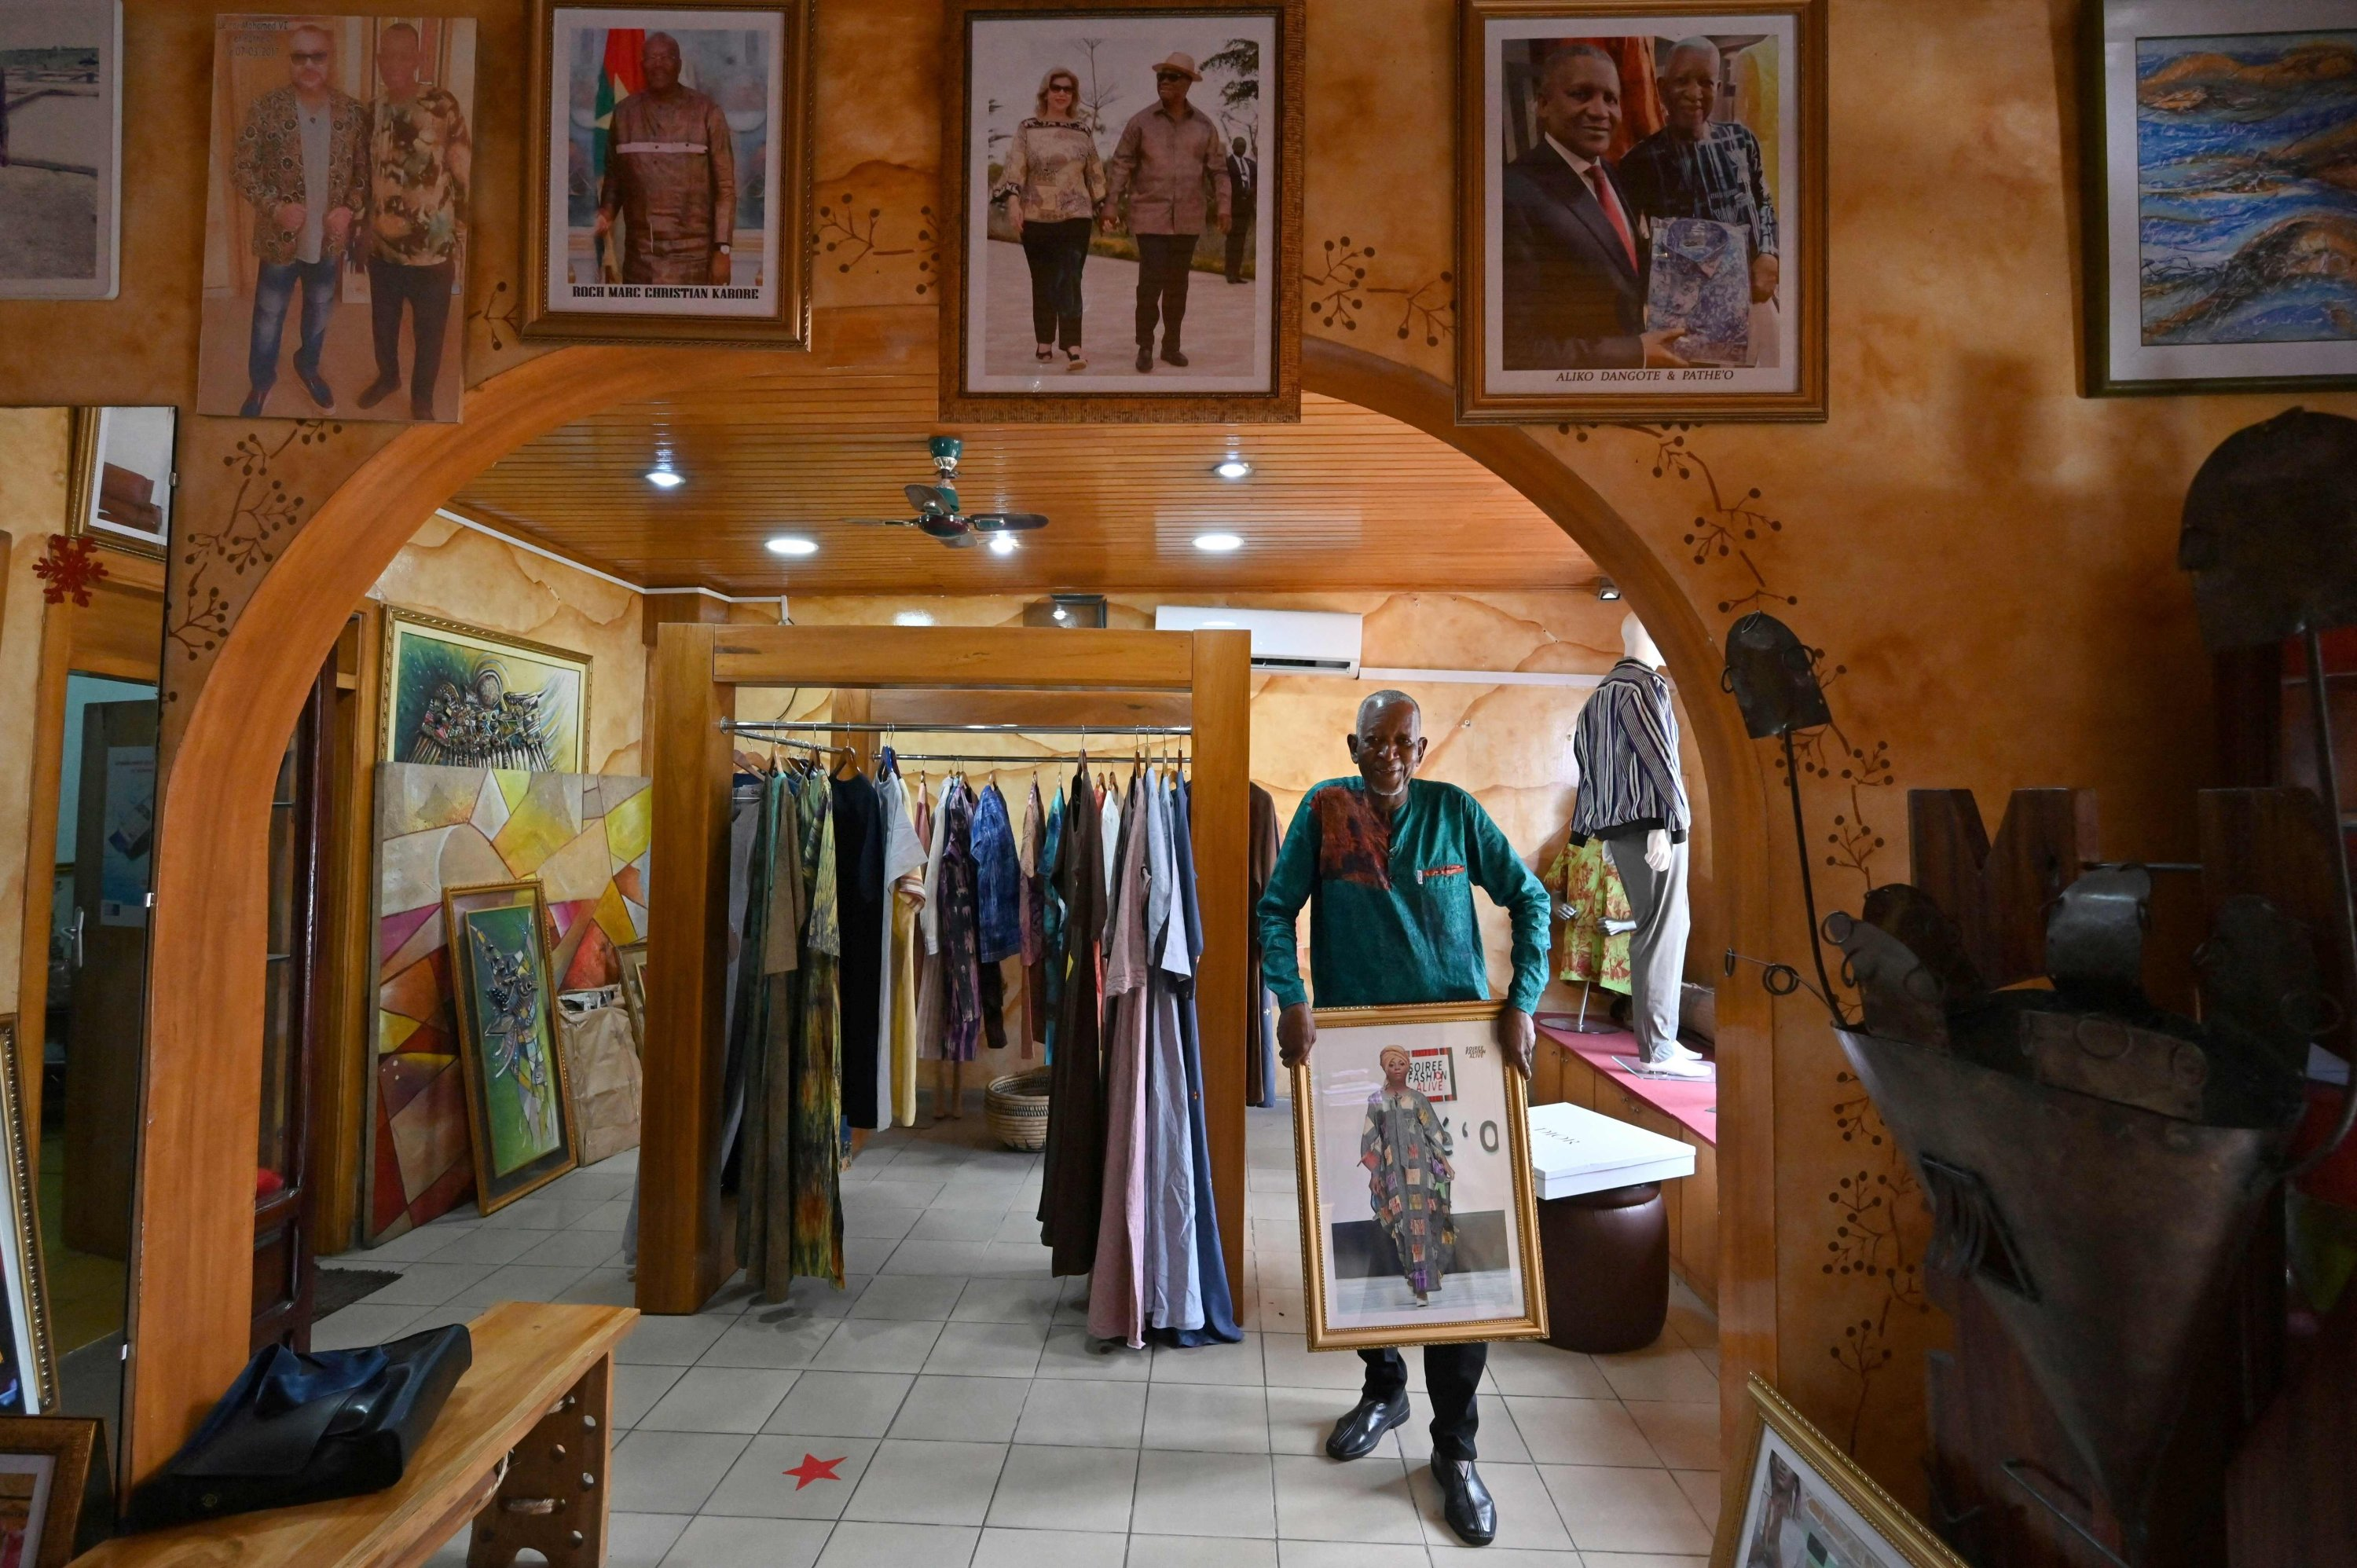 Ivorion-Burkinabe fashion designer Pathe Ouedraogo, known as Pathe'O, poses for a photograph in his store in Abidjan, Ivory Coast, May 26, 2021. (AFP Photo)